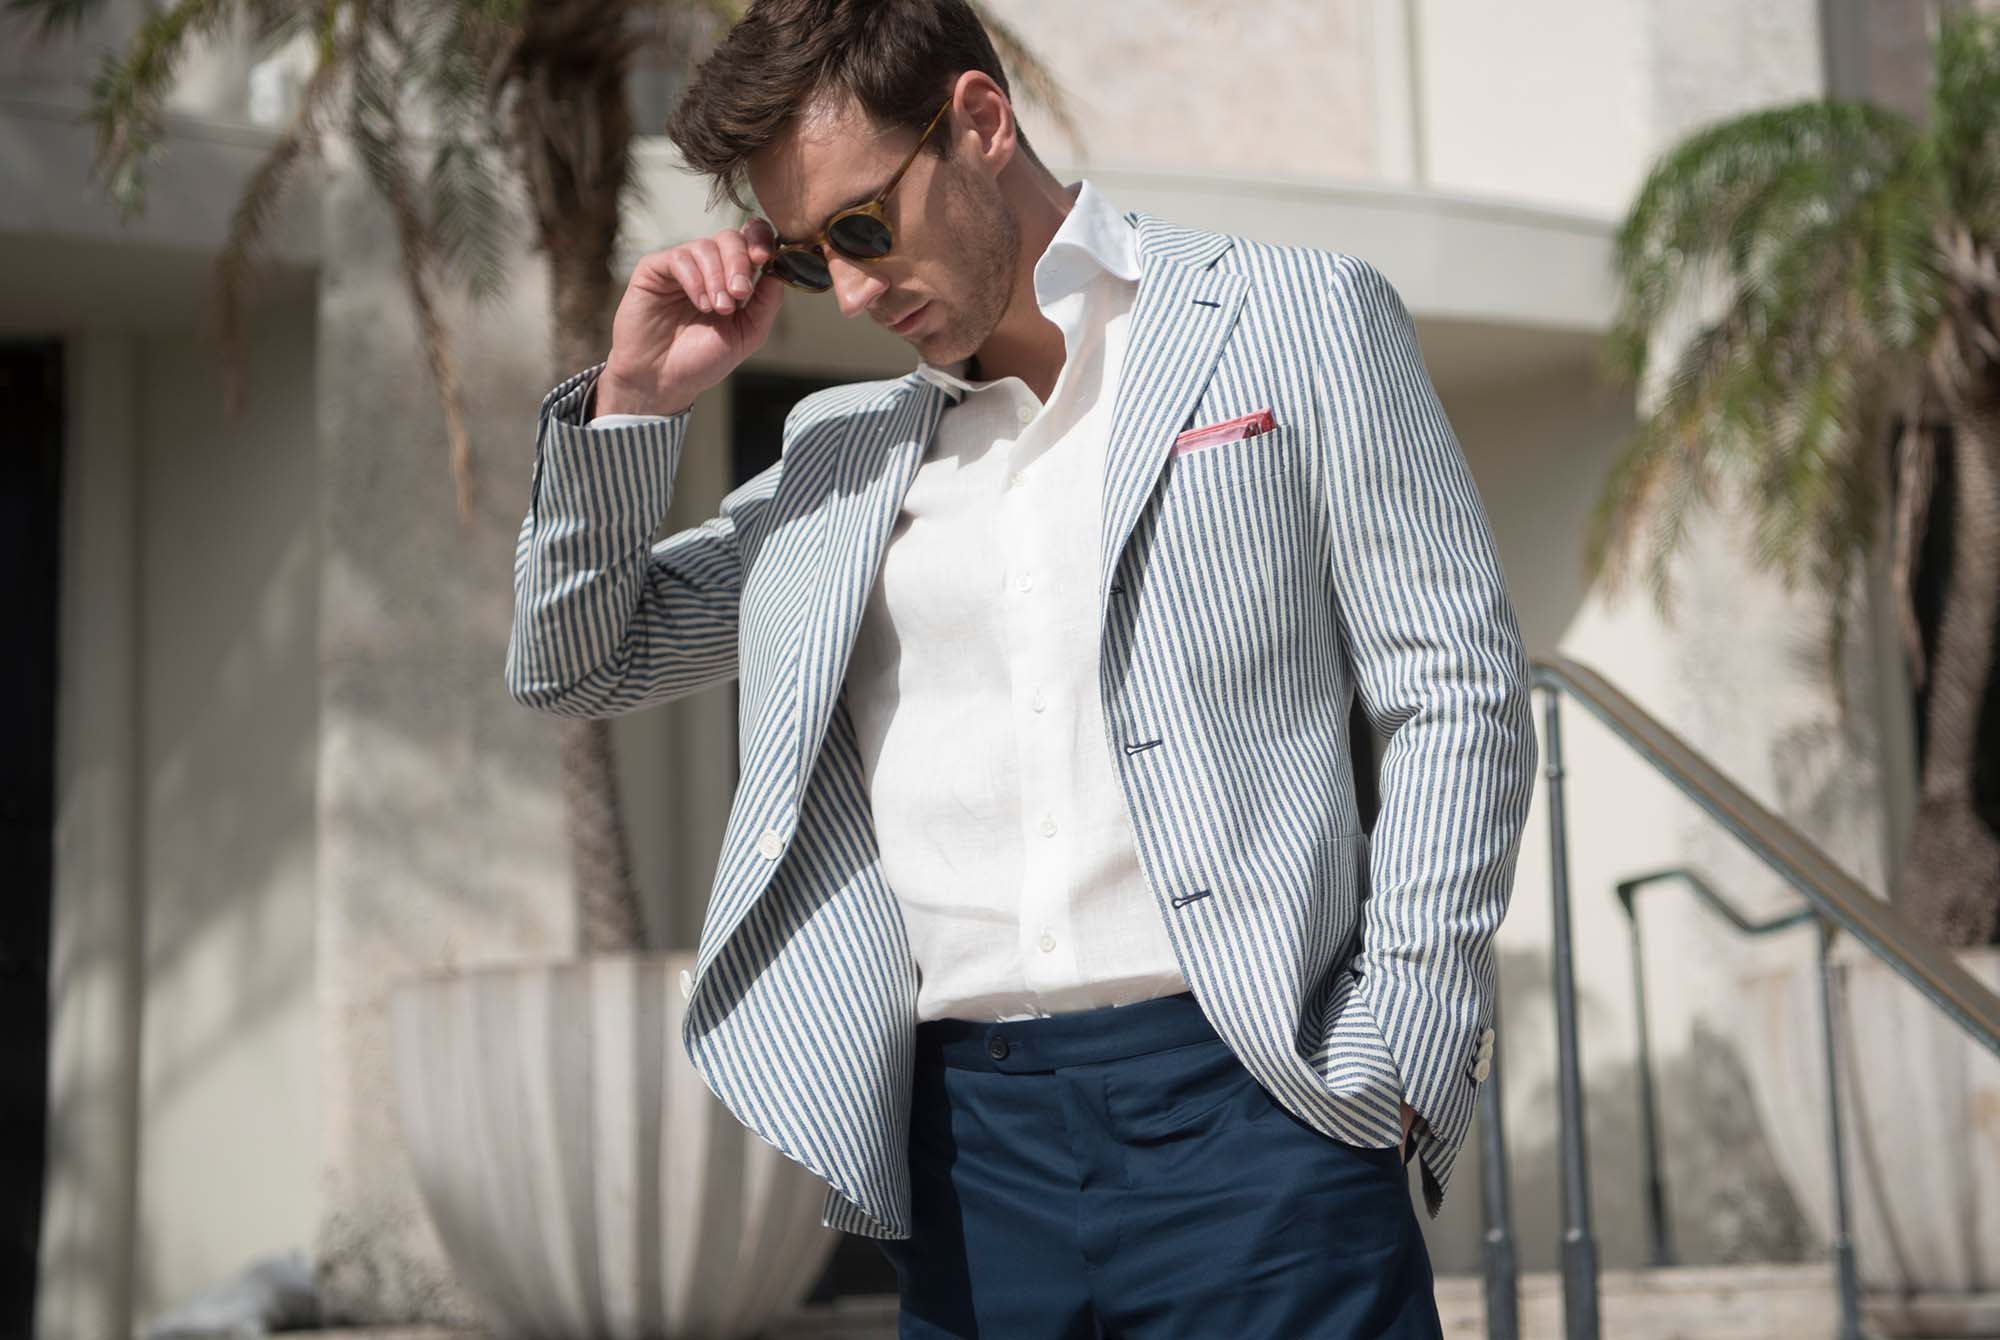 patterned suits can elevate your style